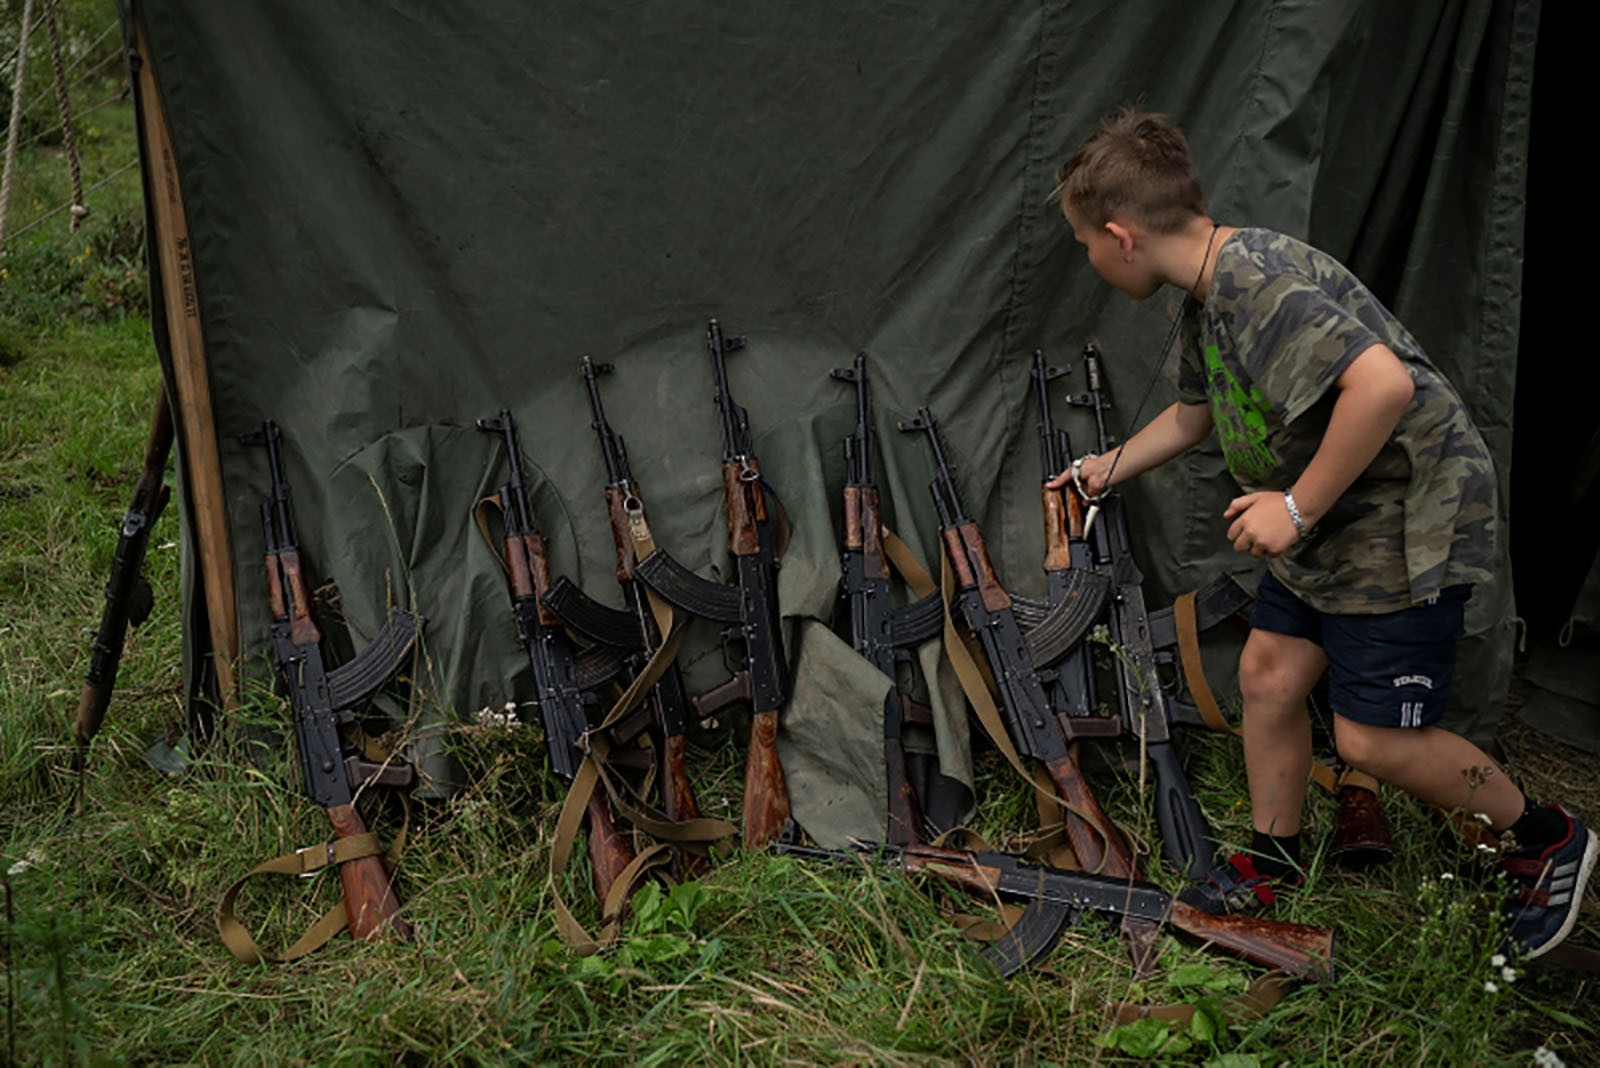 A young of the camp grabs his AK-47 during a tactical exercise.